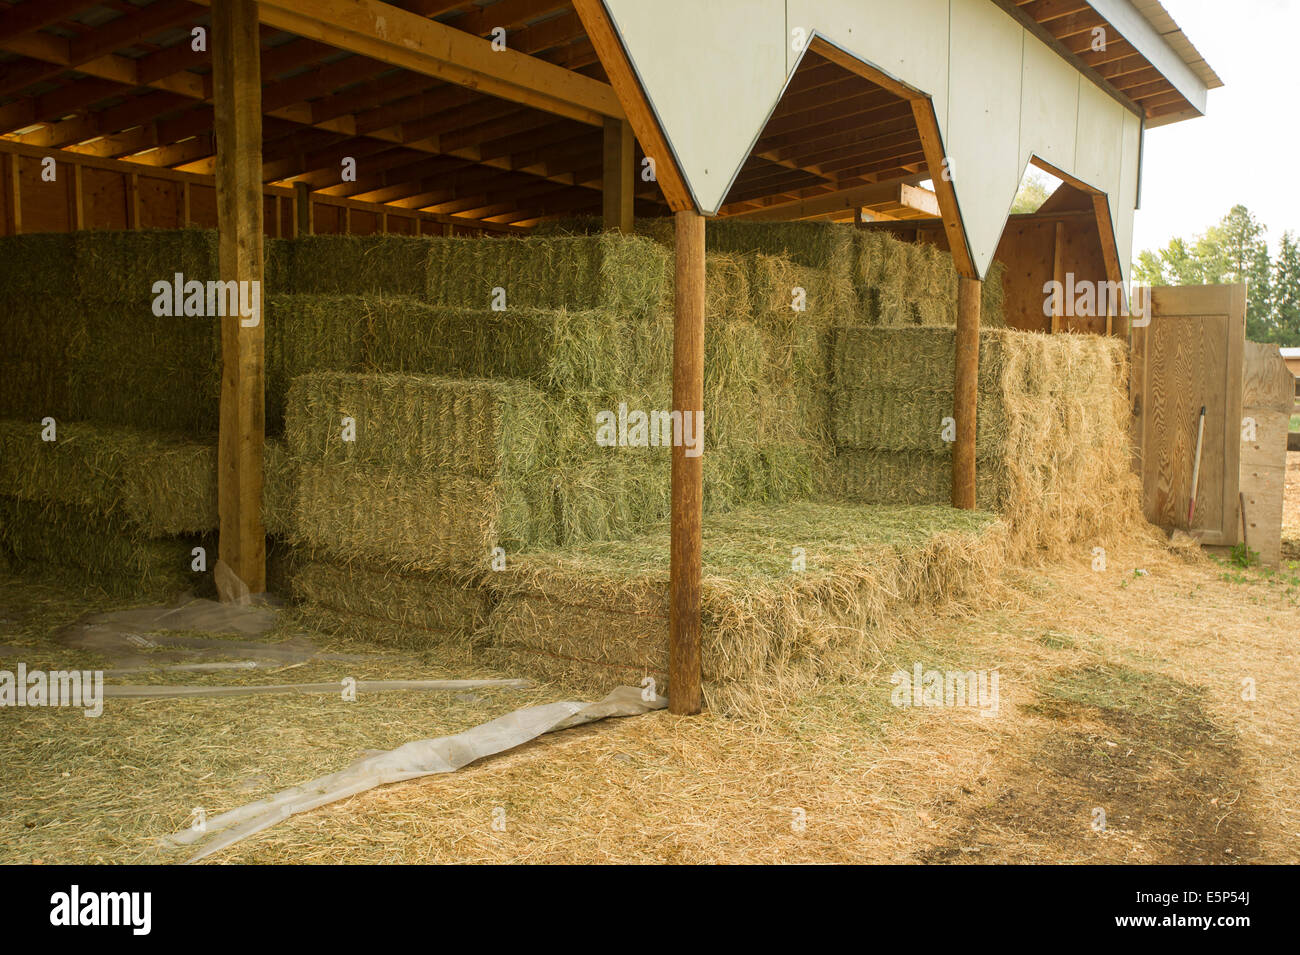 Stacked Bales of hay in a storage shed & Stacked Bales of hay in a storage shed Stock Photo: 72401746 - Alamy